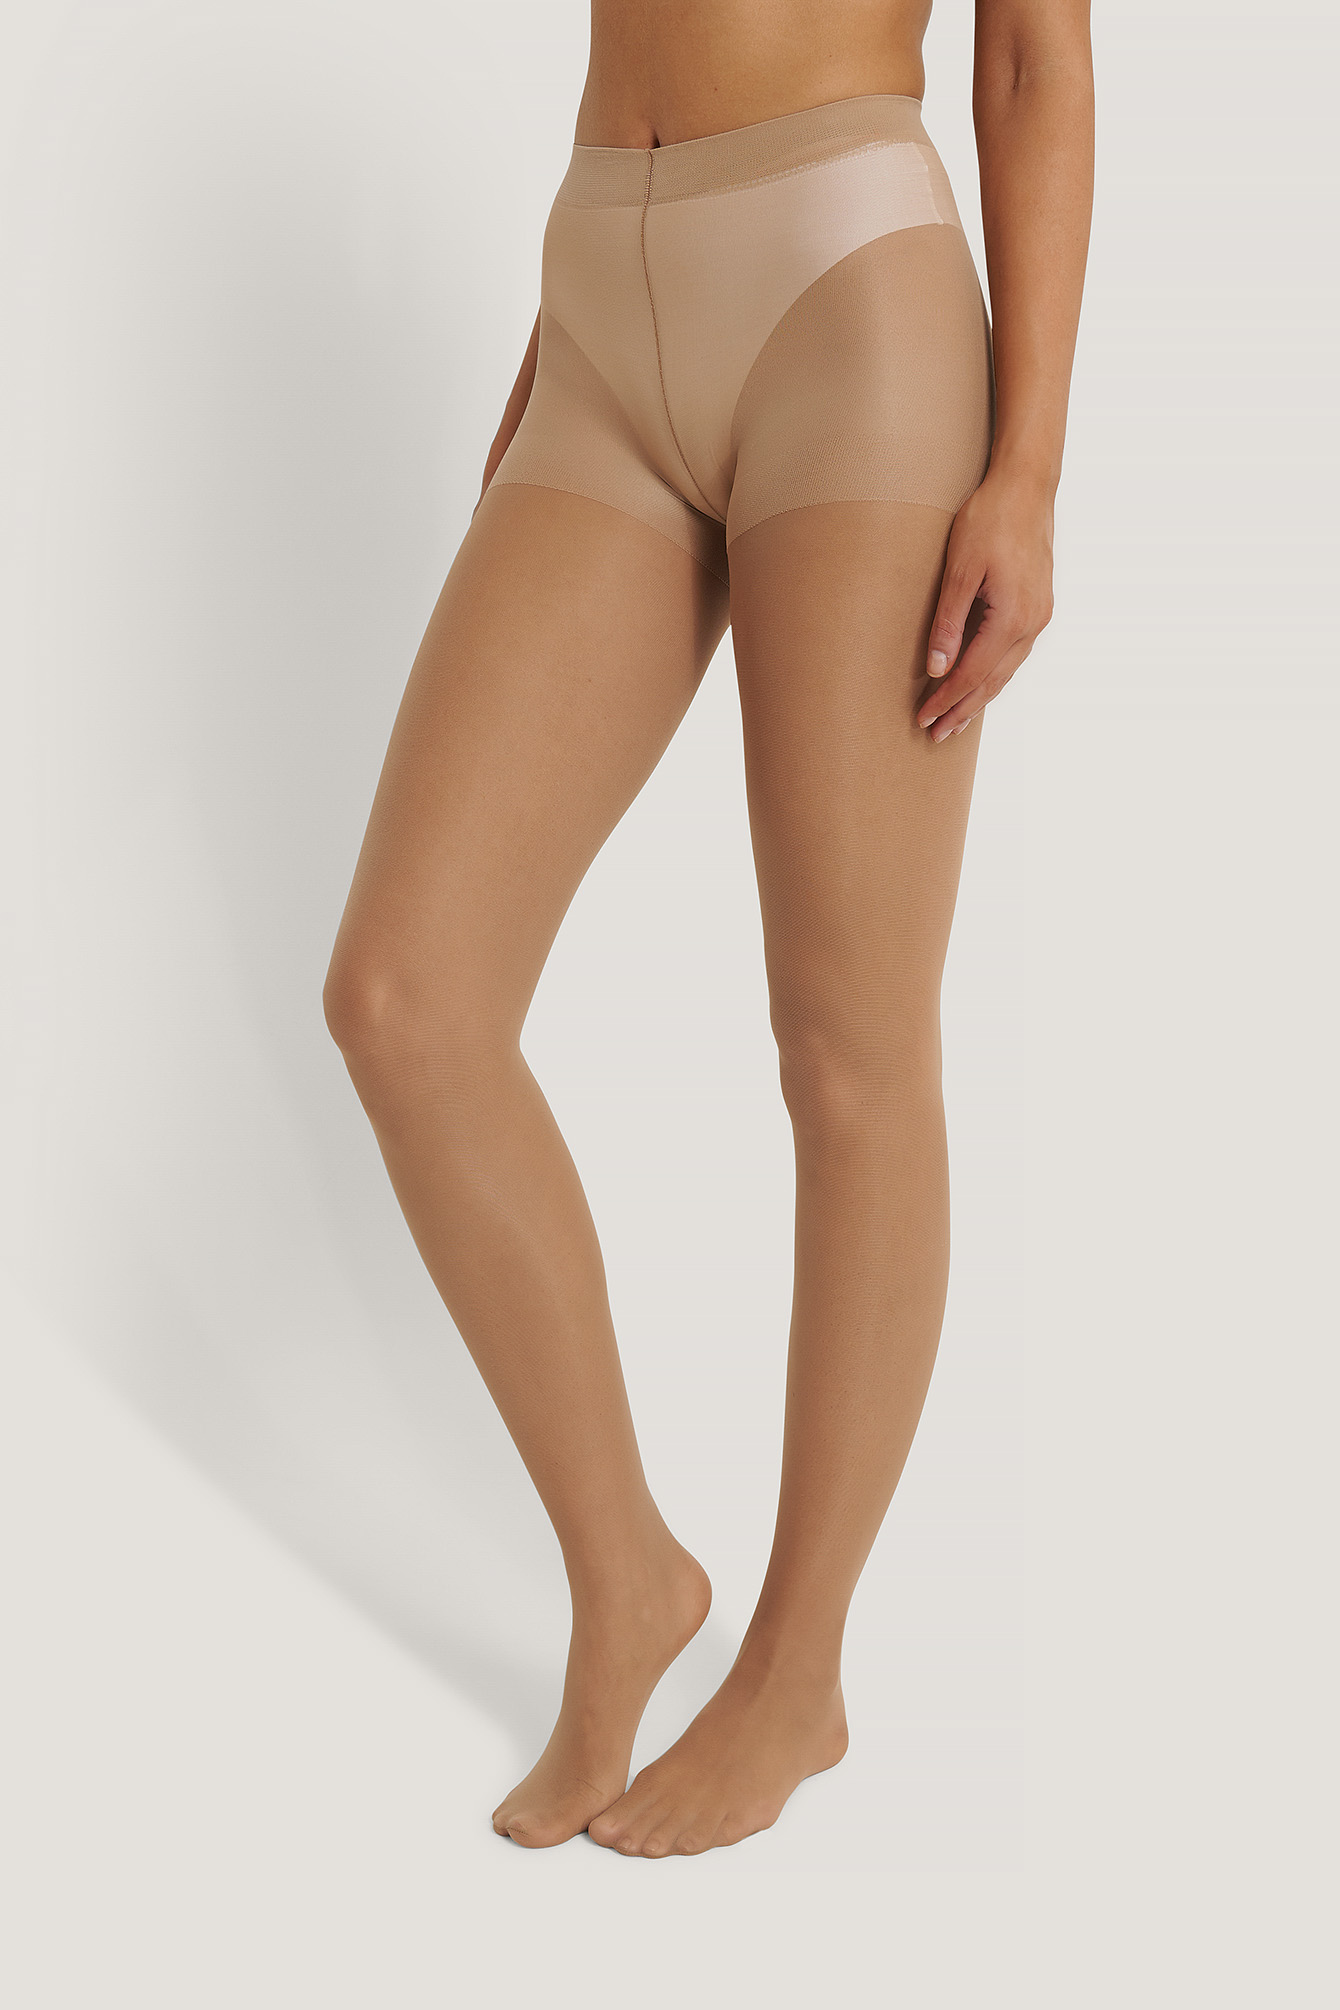 Nude Tights 30 DEN 2-pack